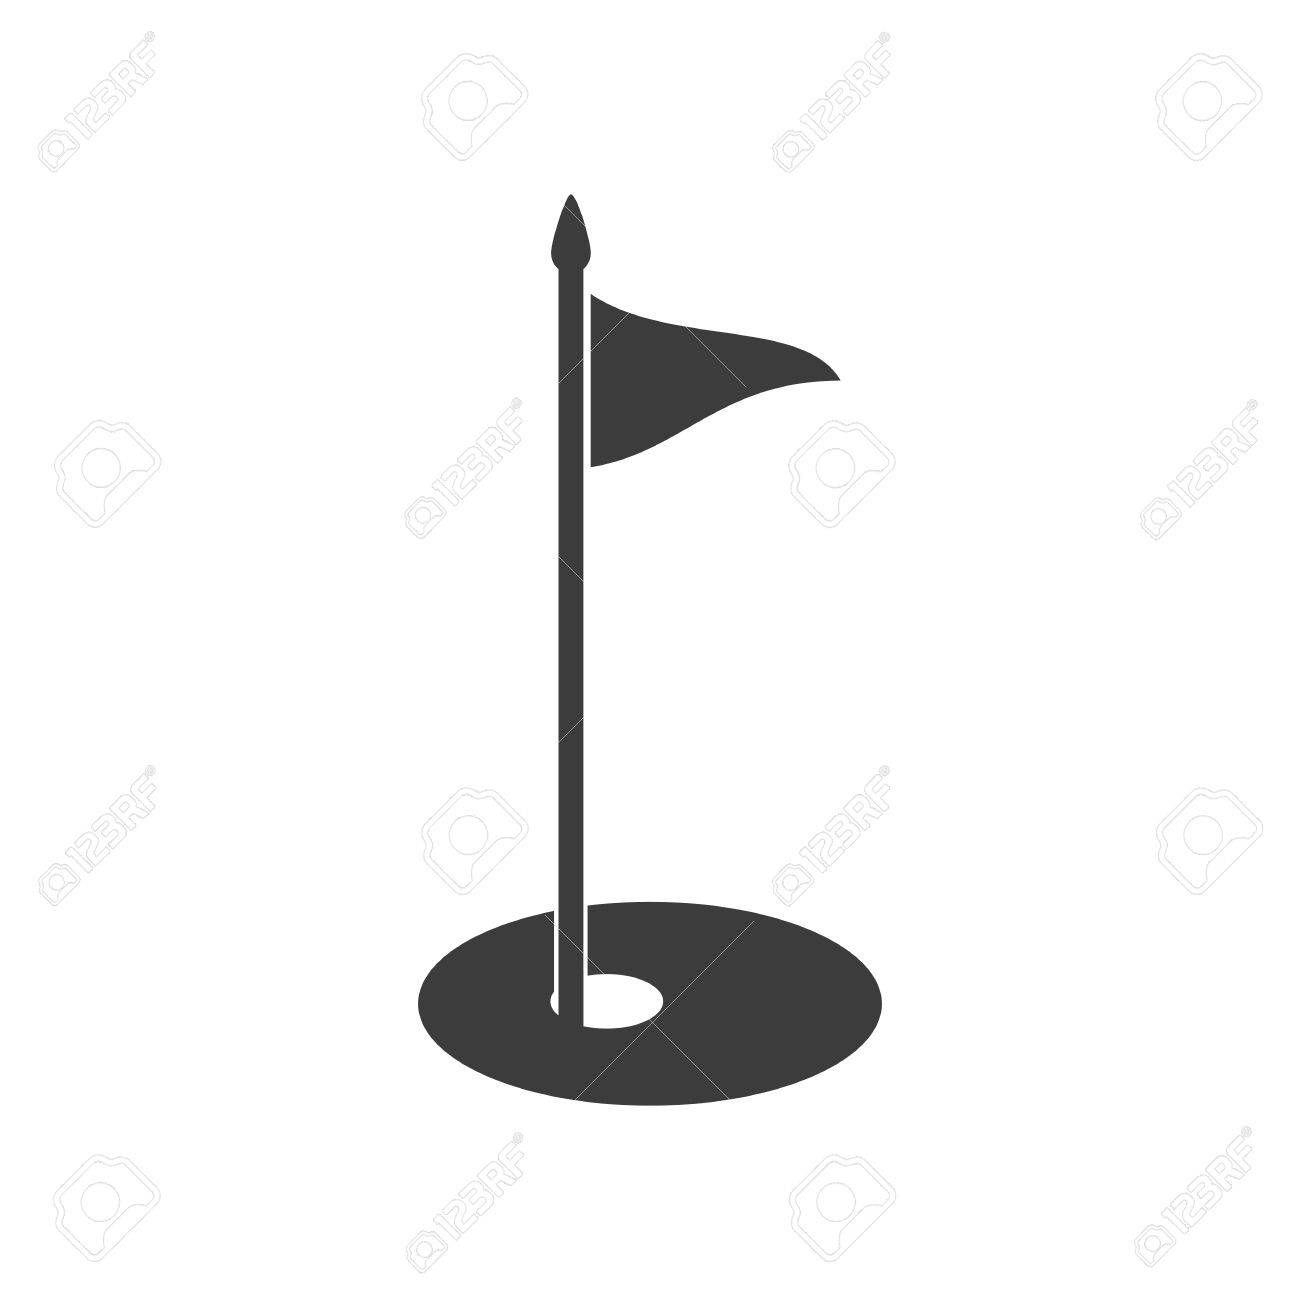 Golf Flag Icon Golf Flag Vector Isolated On White Background Illustration Aff Icon Vector Golf Flag Flag Icon Flag Vector Vector Character Design